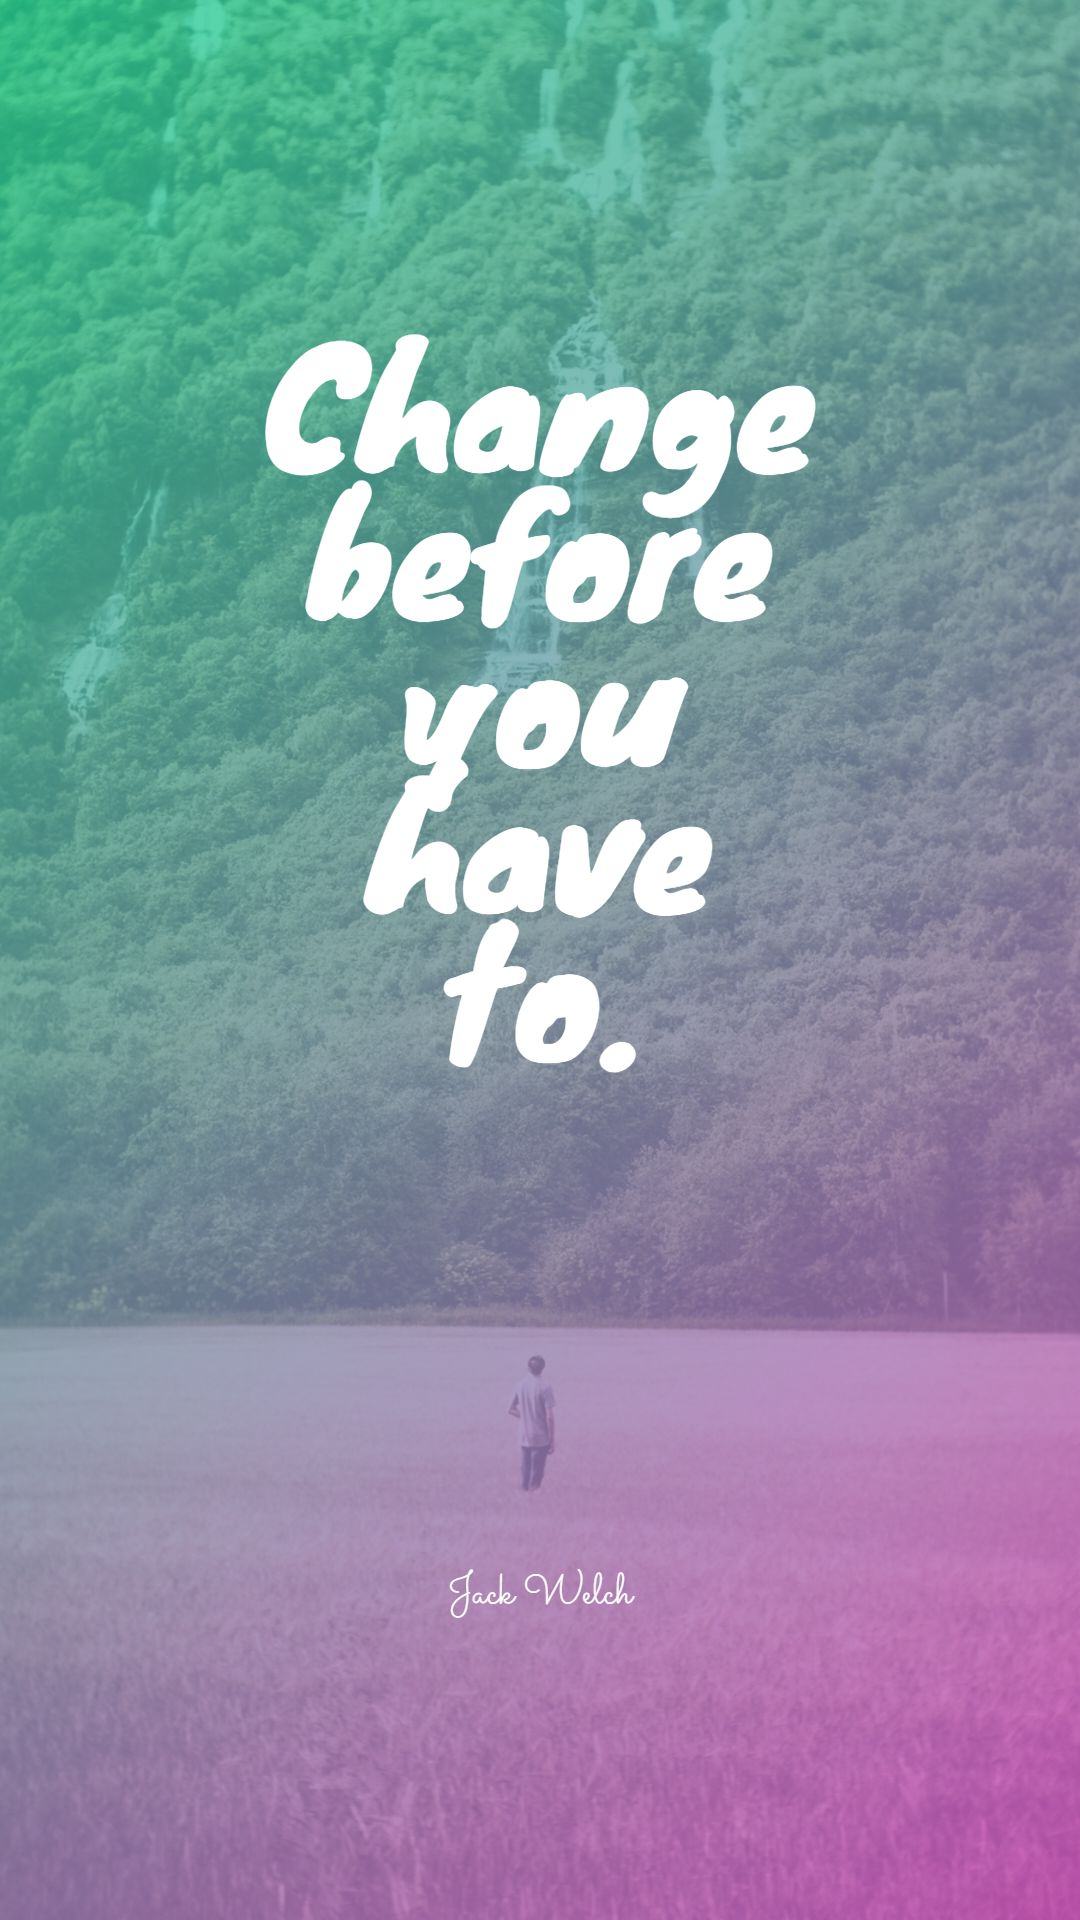 Quotes image of Change before you have to.